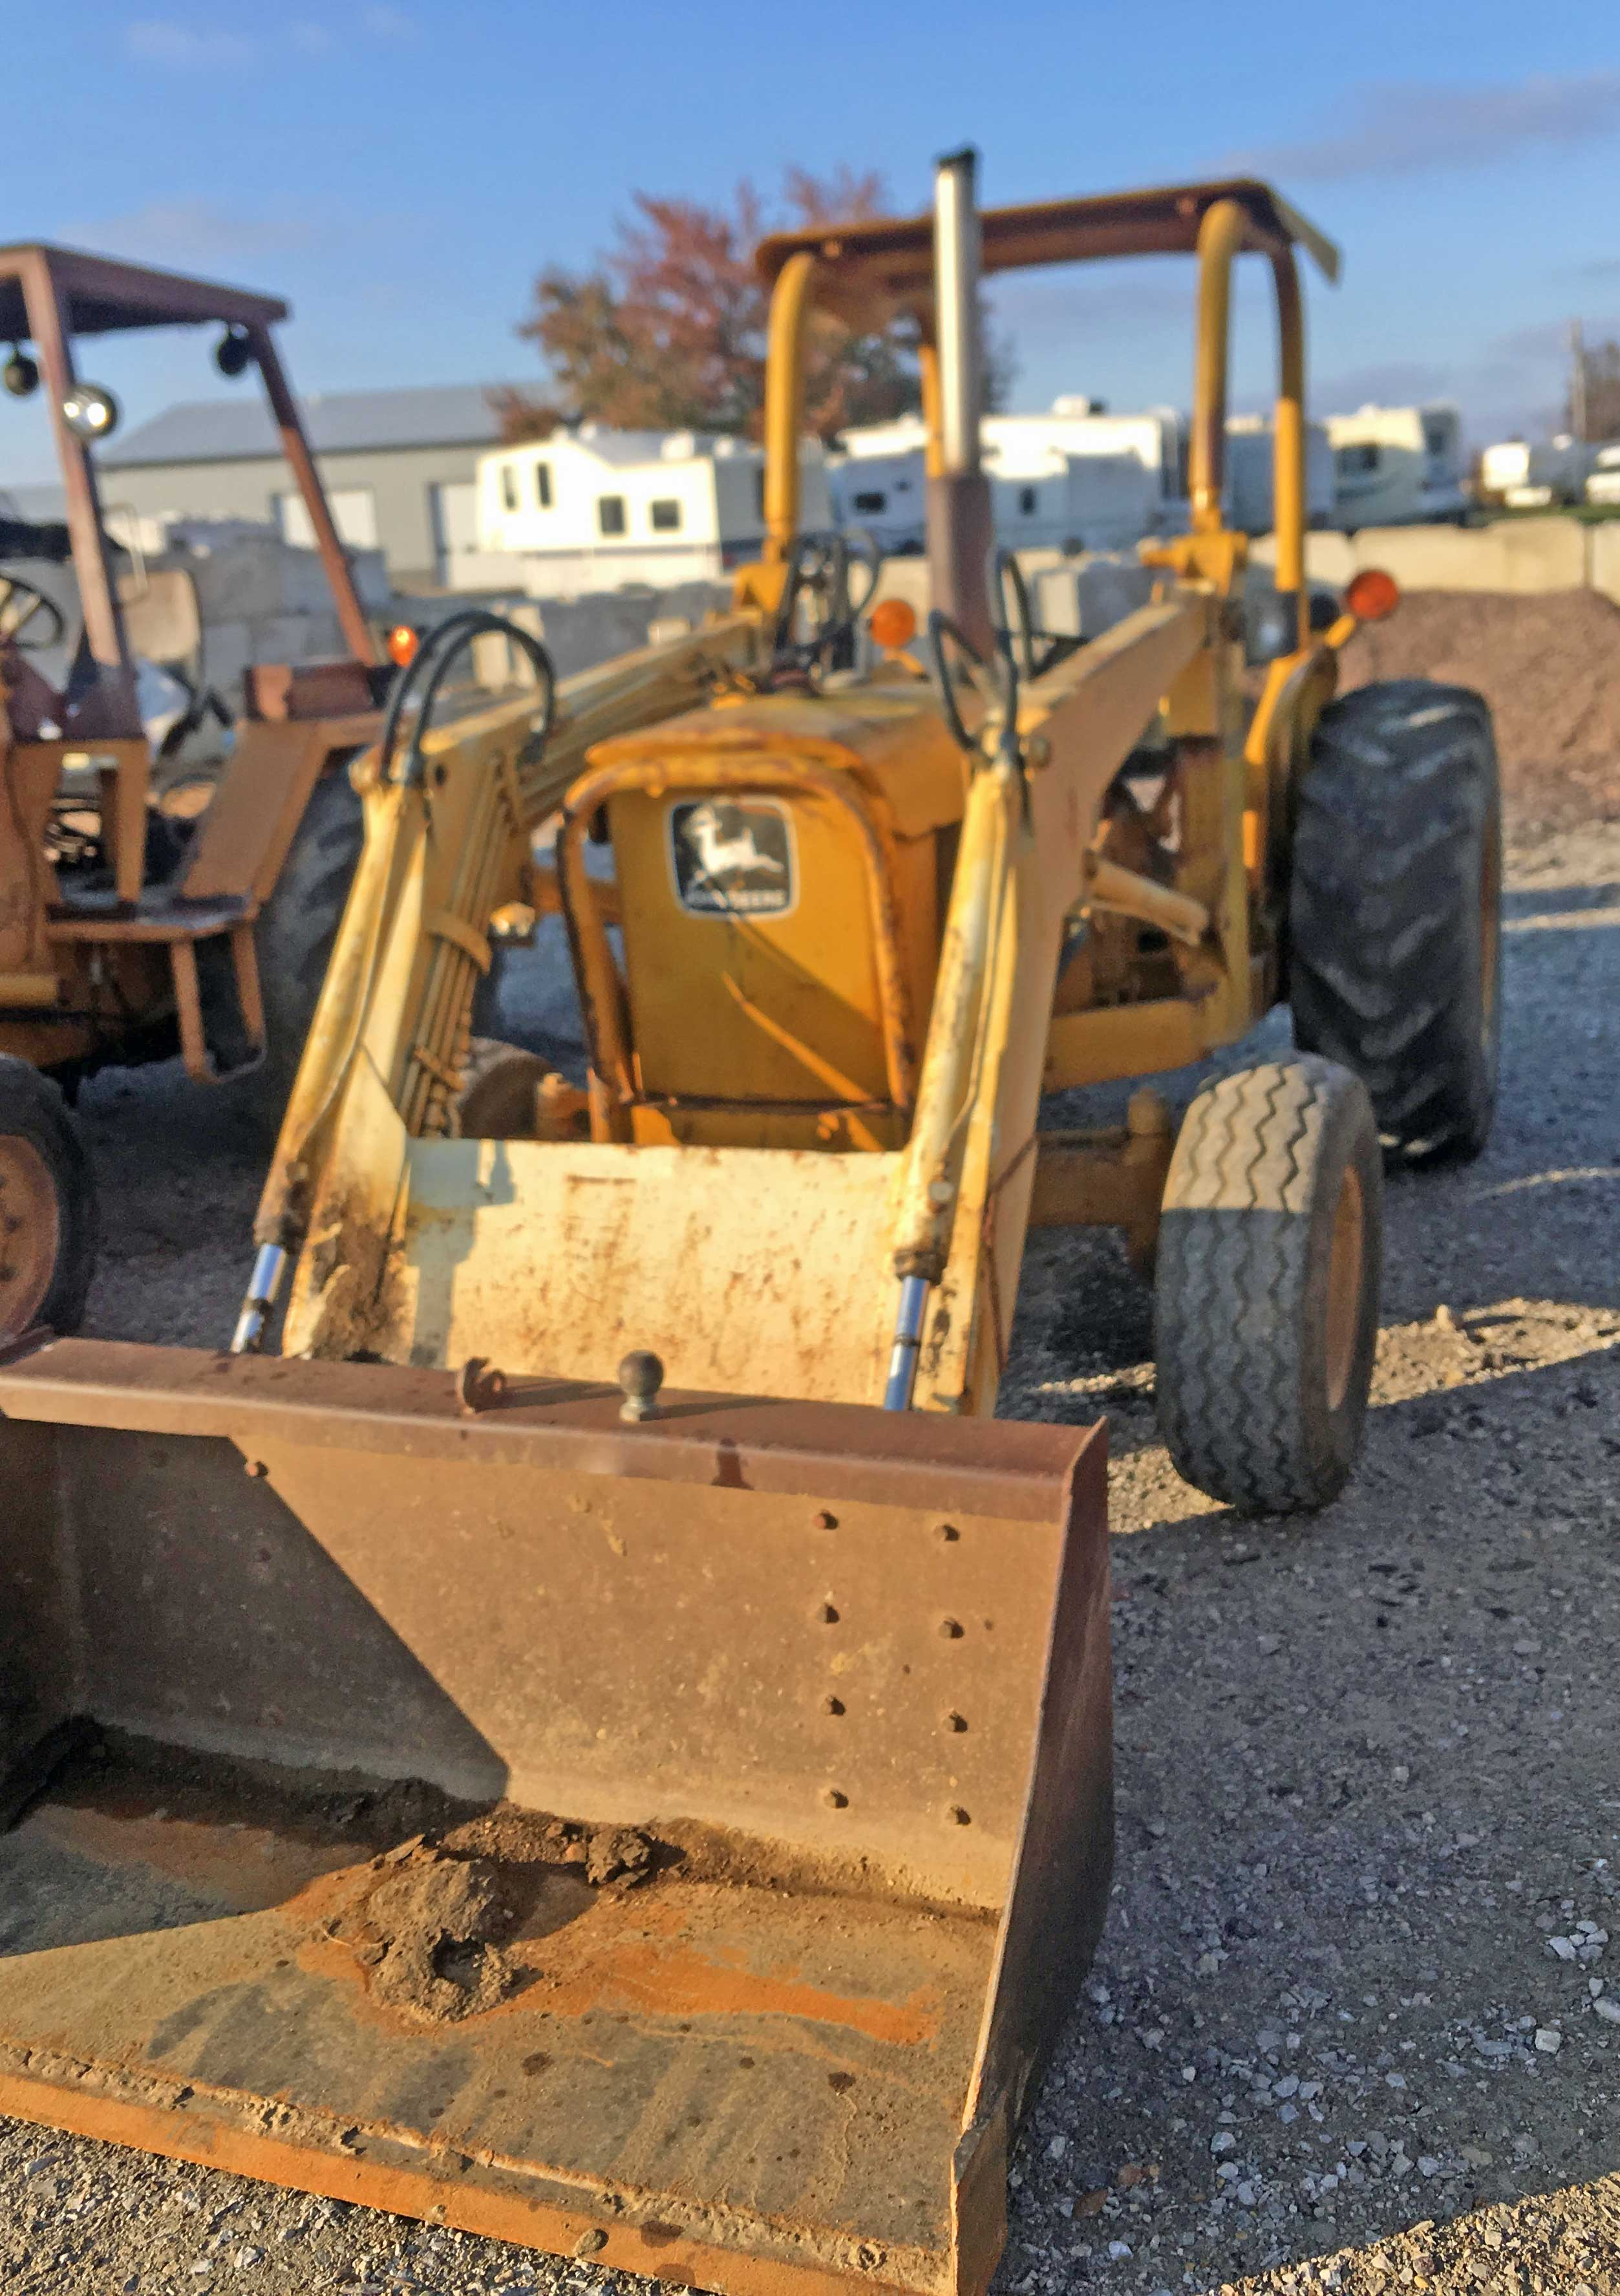 Lot 6 - 987 John Deere 401C Tractor with Loader. 987 Hrs